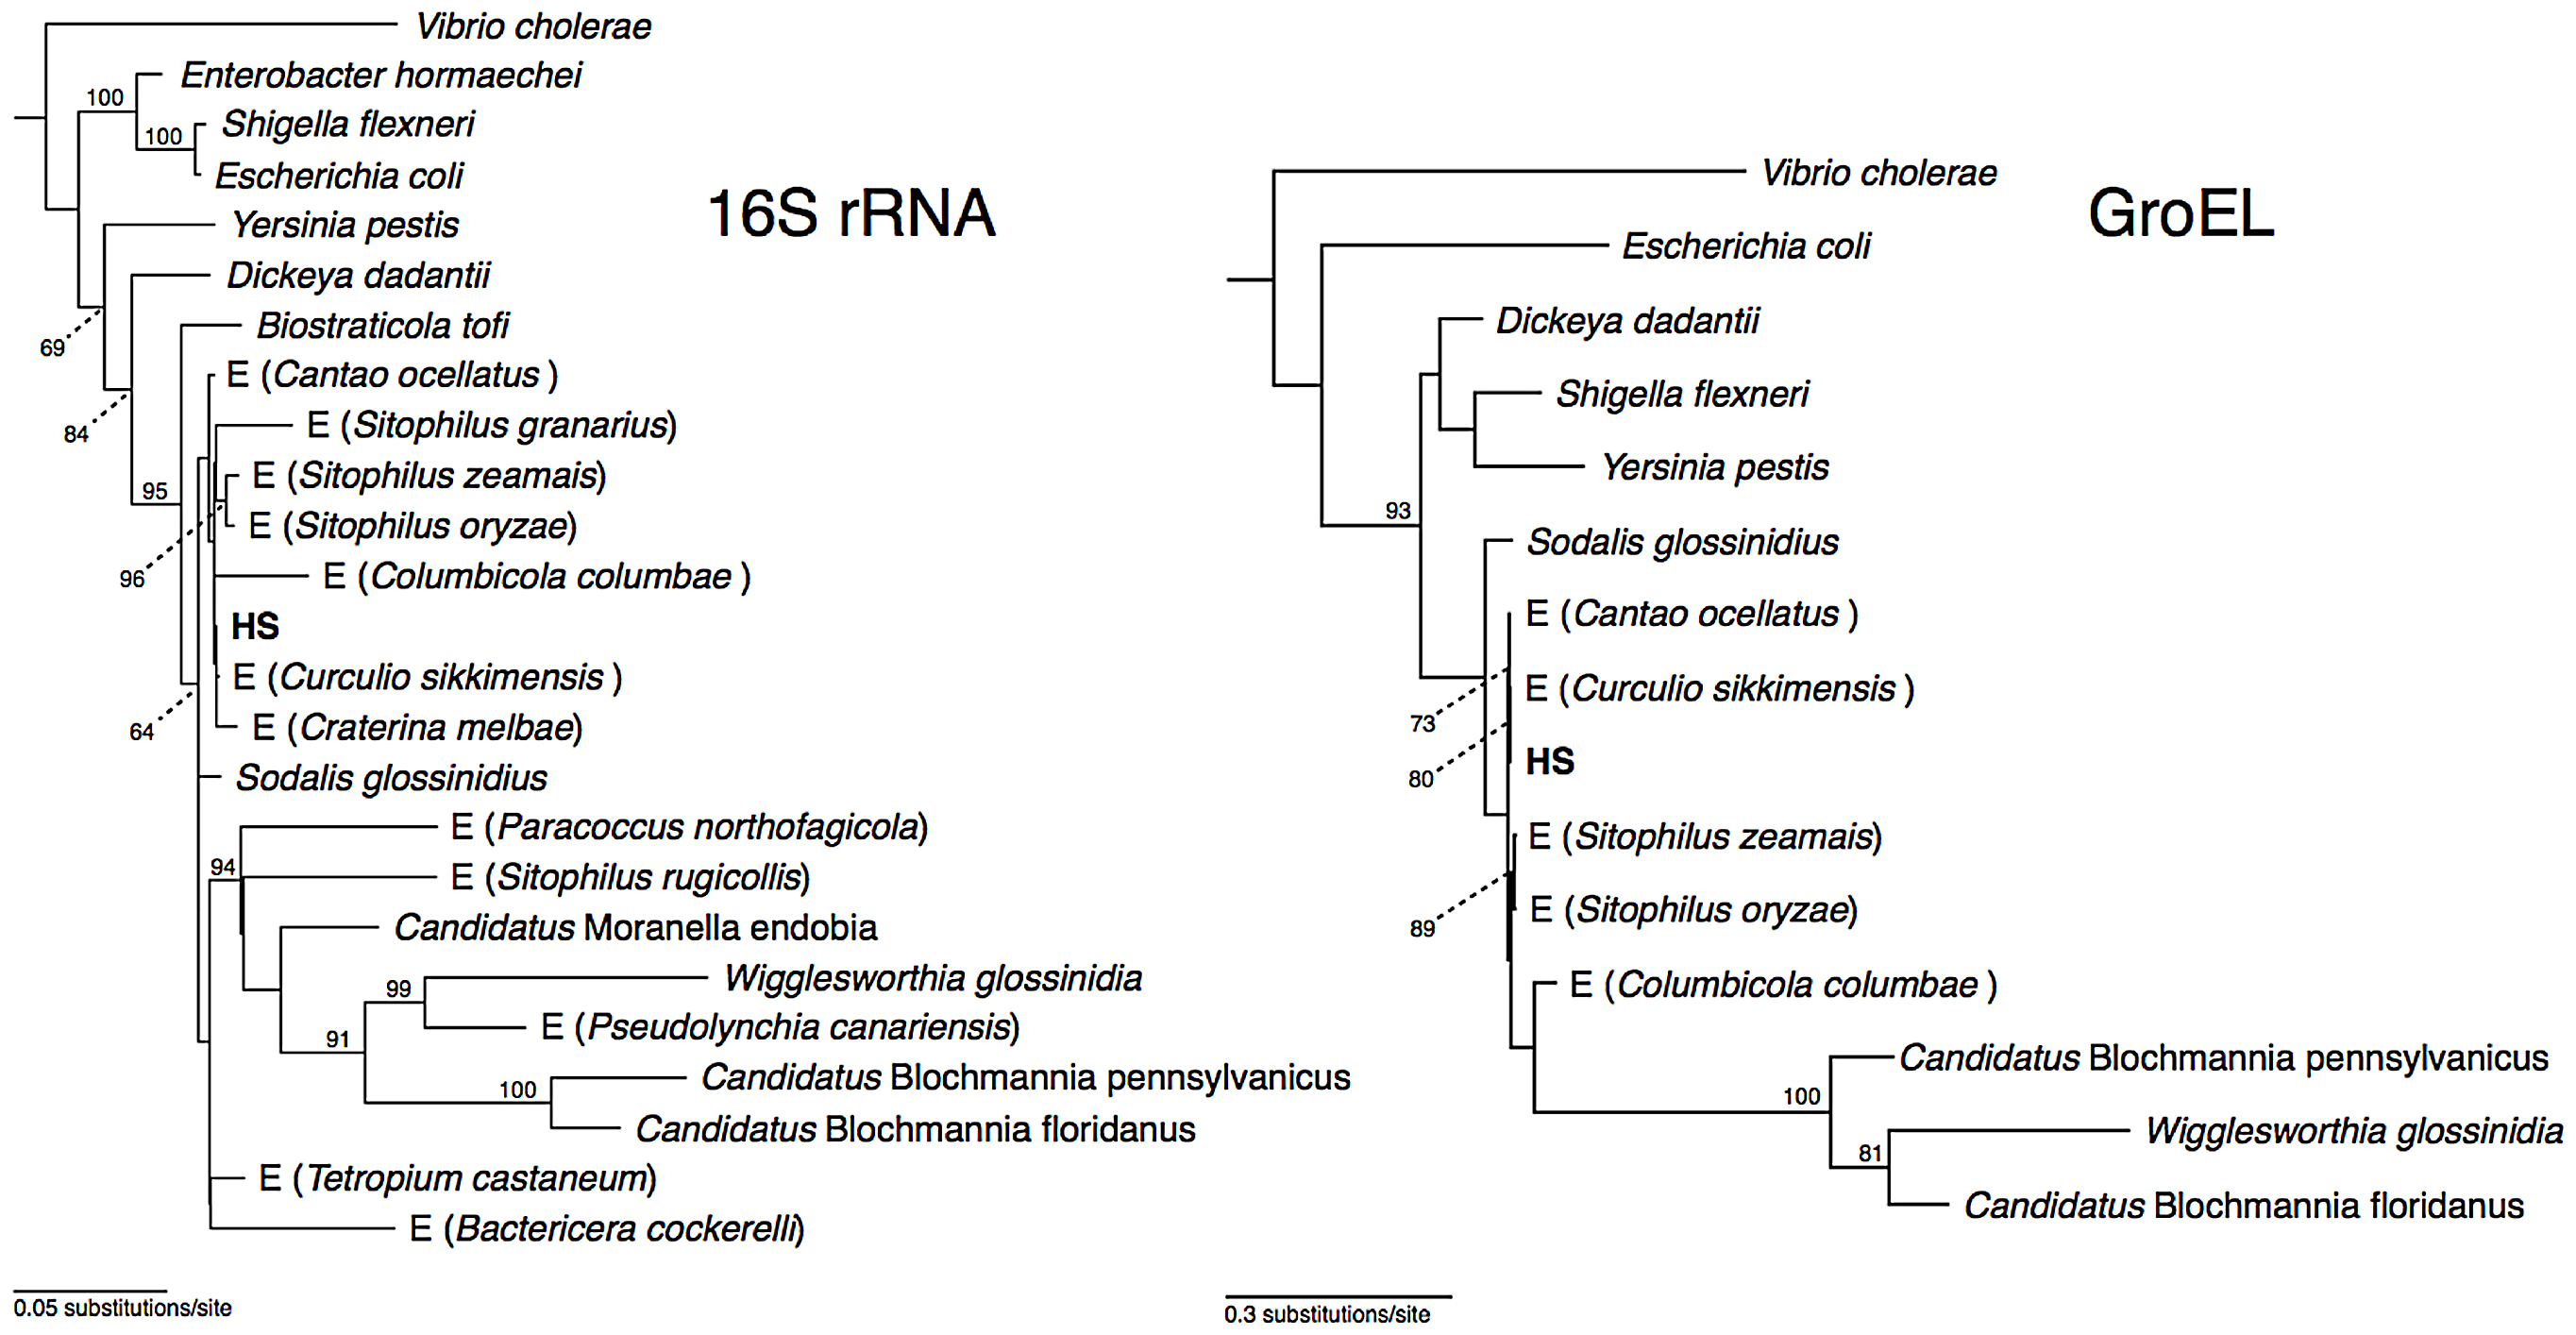 Phylogeny of strain HS and related <i>Sodalis</i>-allied endosymbionts and free-living bacteria based on maximum likelihood analyses of a 1.46 kb fragment of 16S rRNA and a 1.68 kb fragment of <i>groEL</i>.